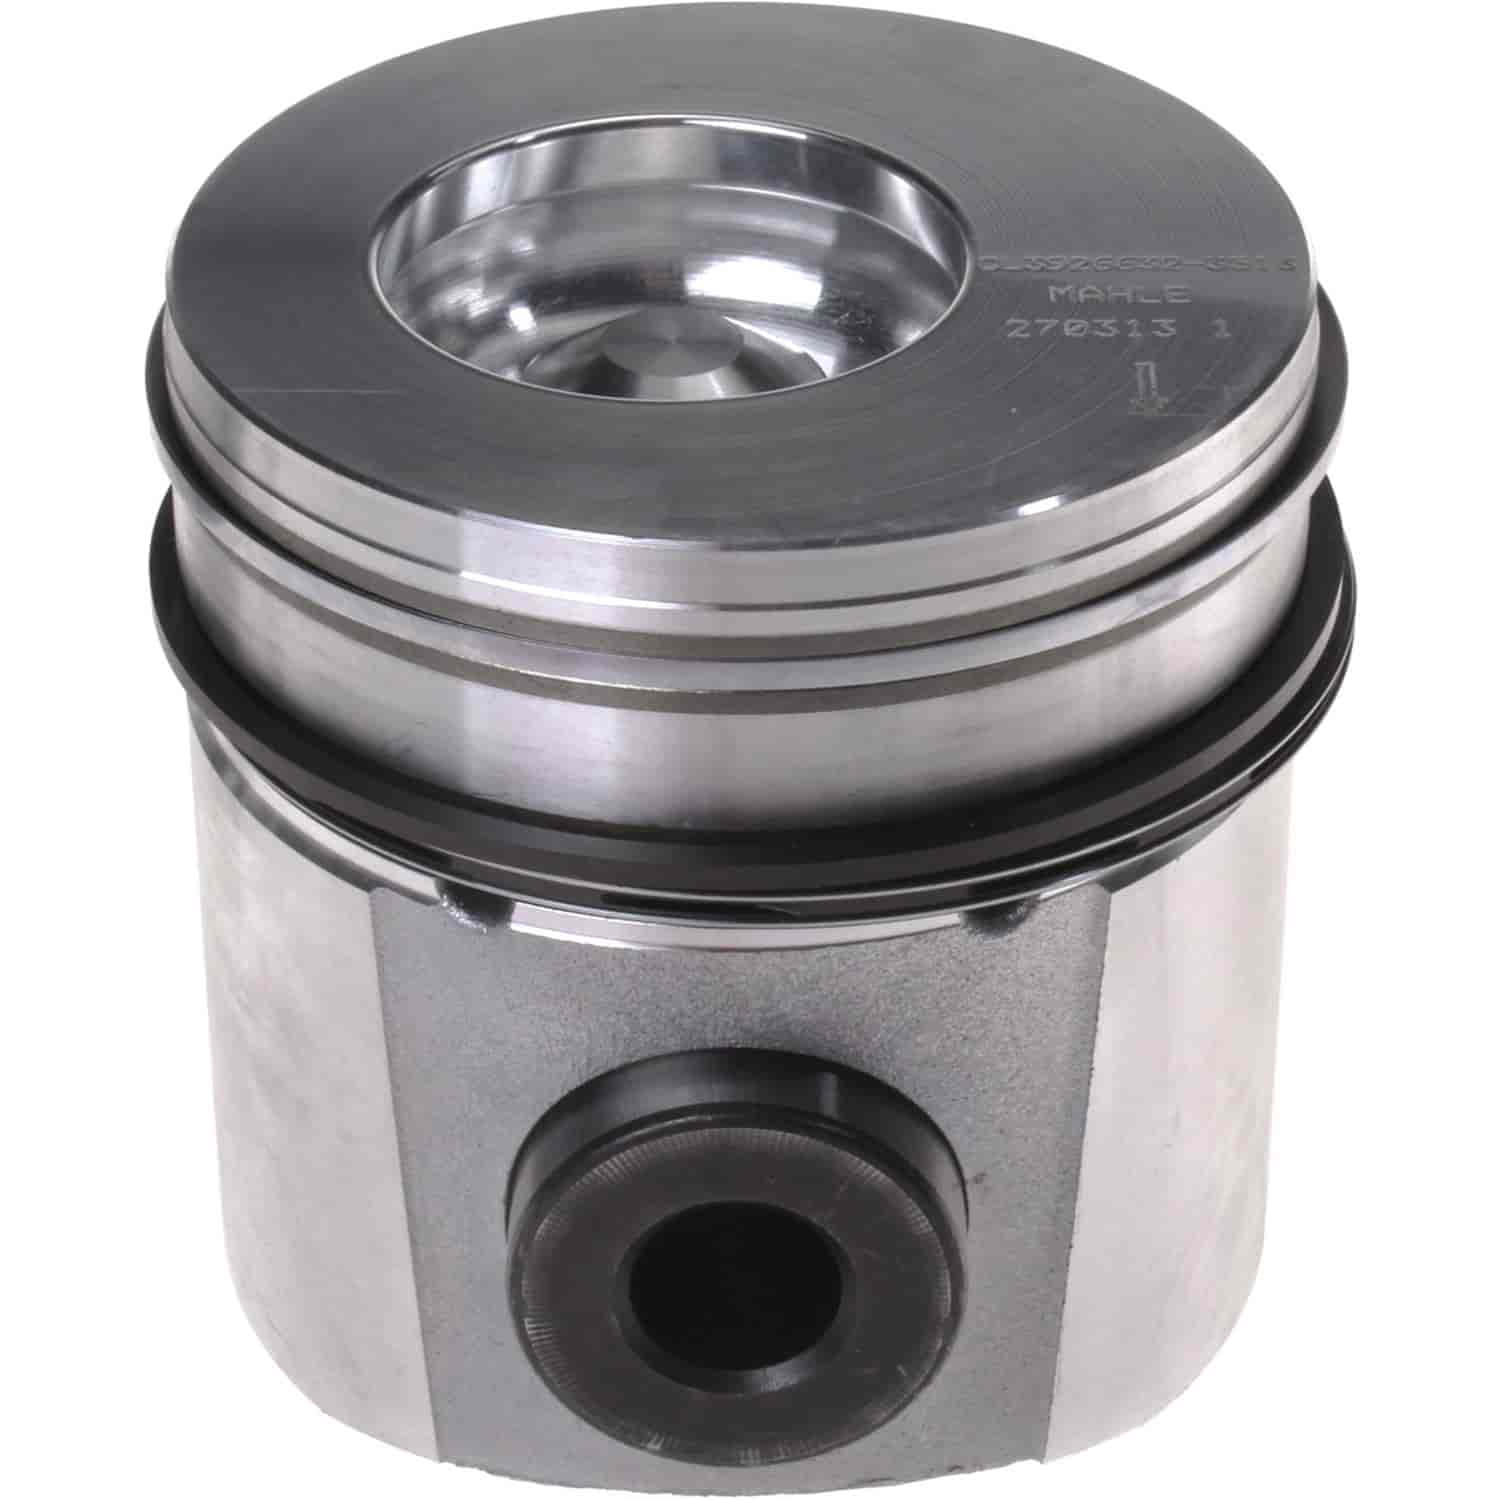 Clevite MAHLE 2243513WR040